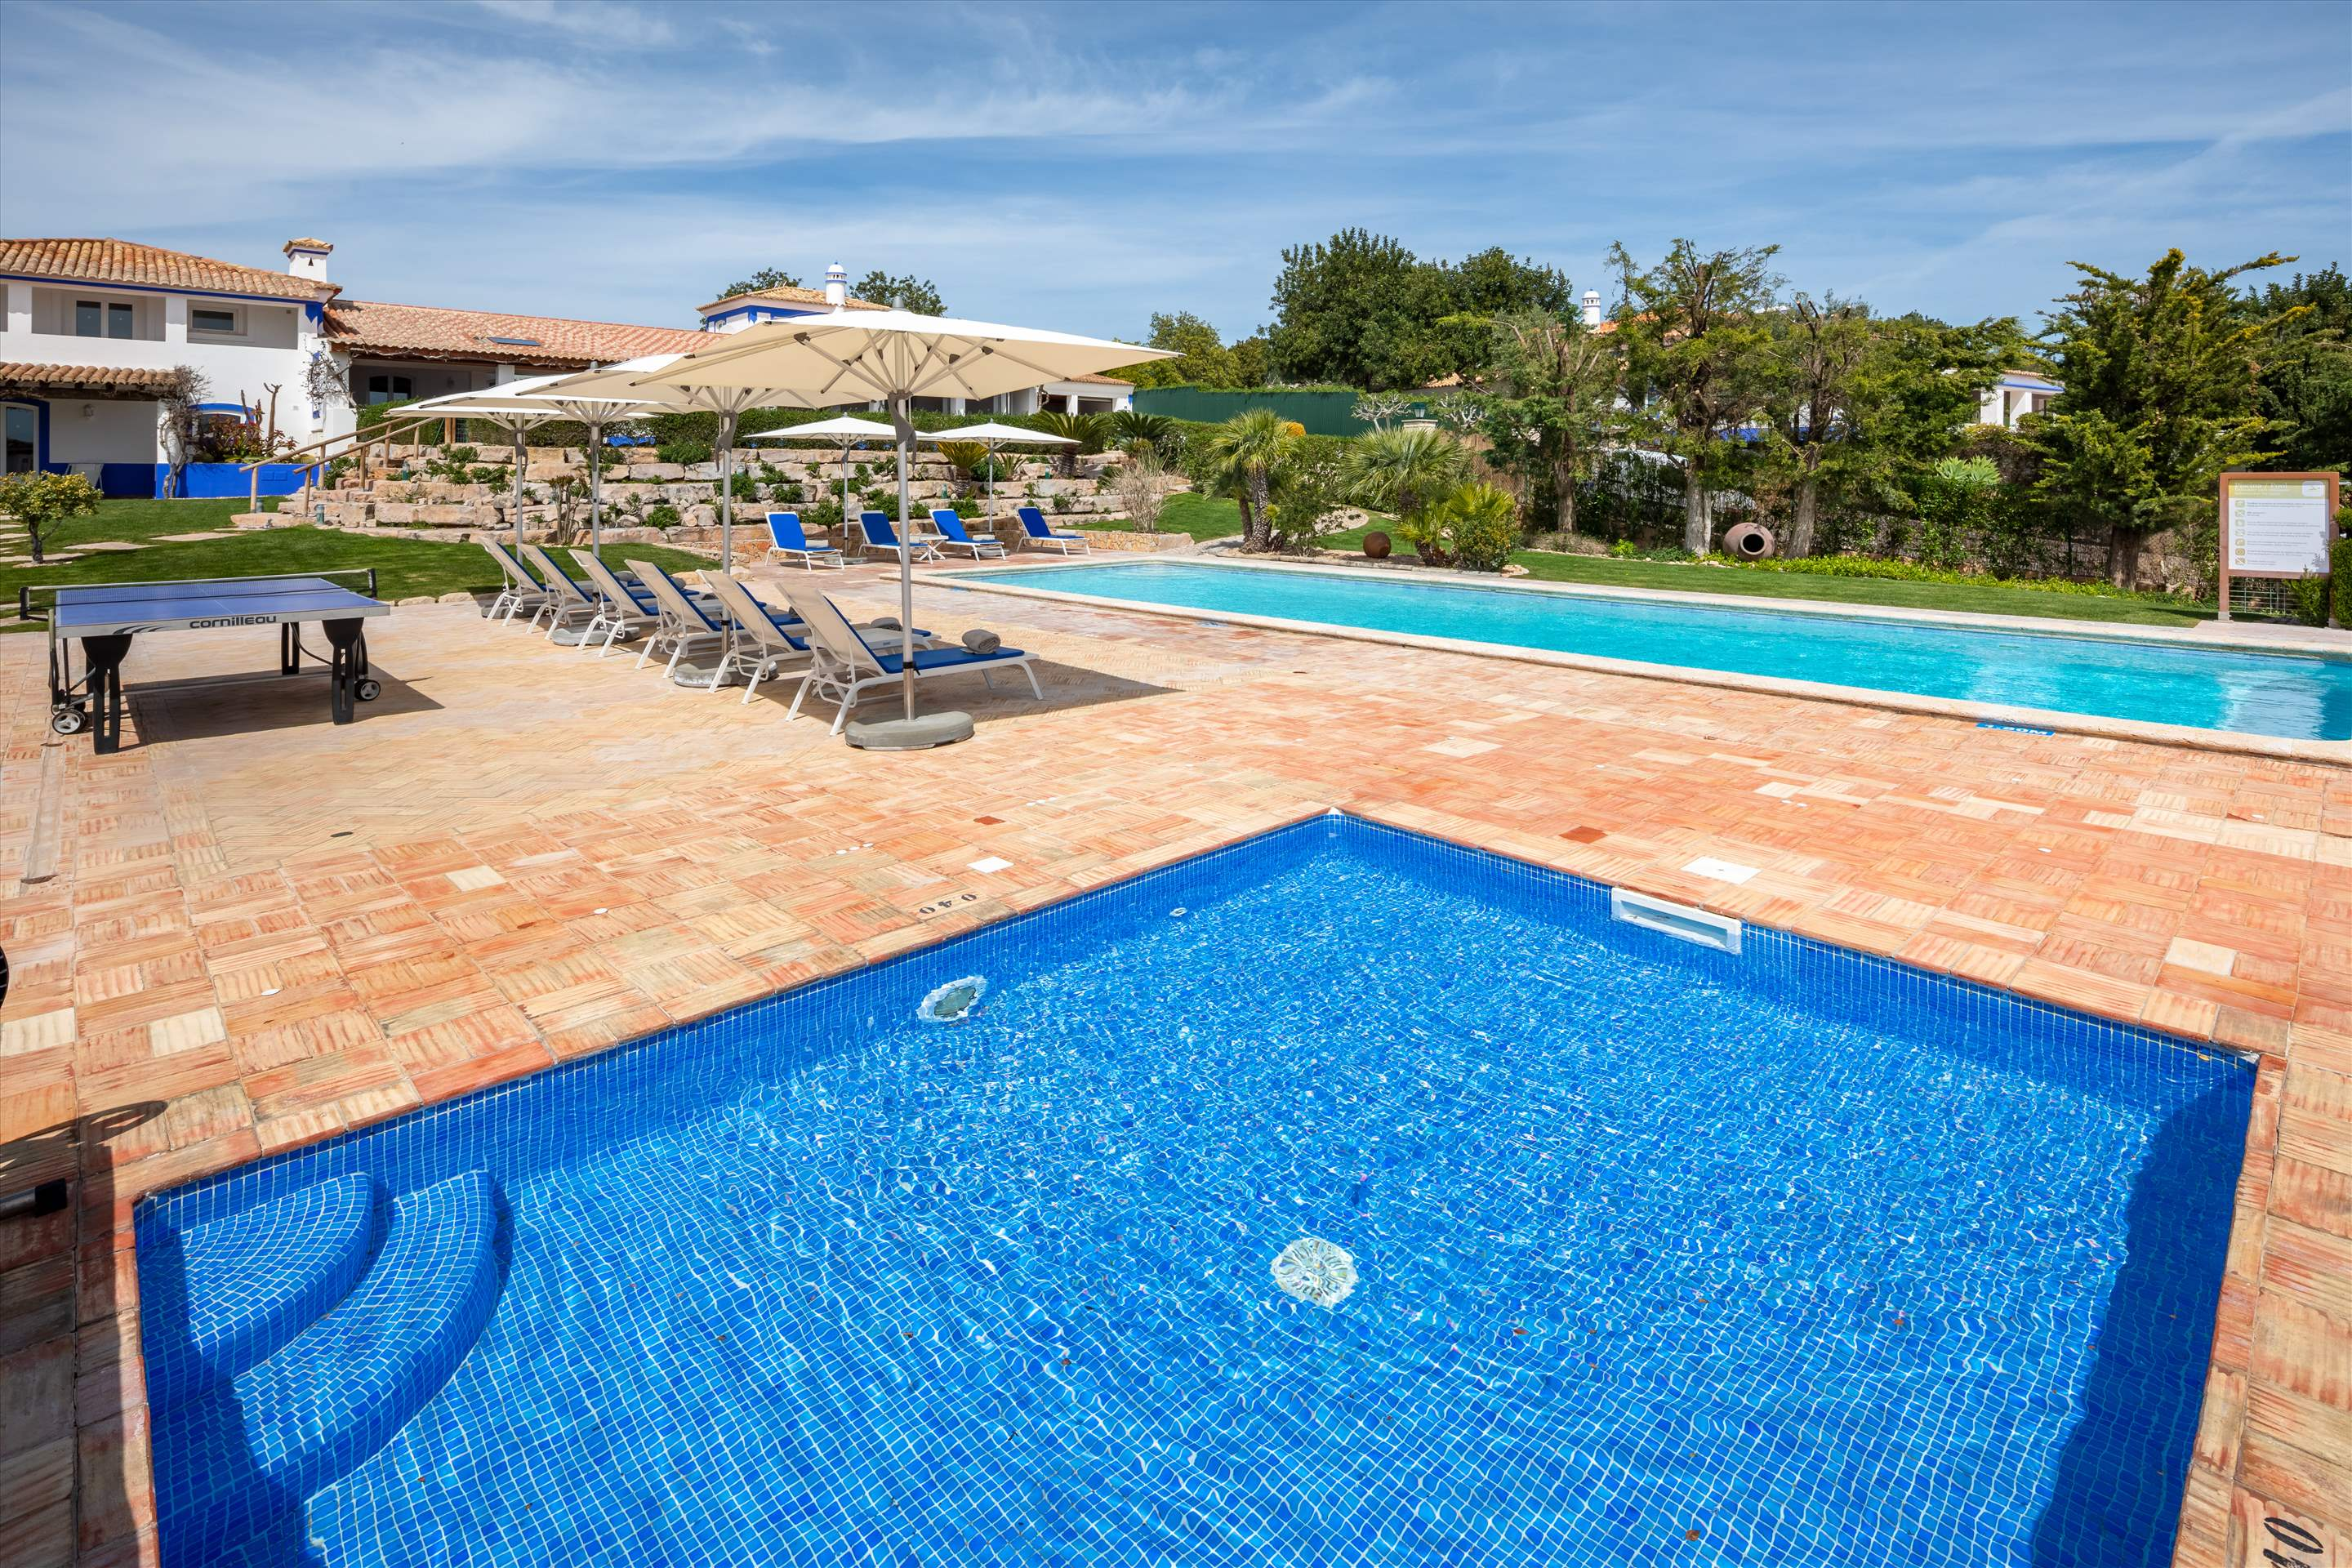 Casa da Montanha, 15-16 persons, 9 bedroom villa in Vilamoura Area, Algarve Photo #14